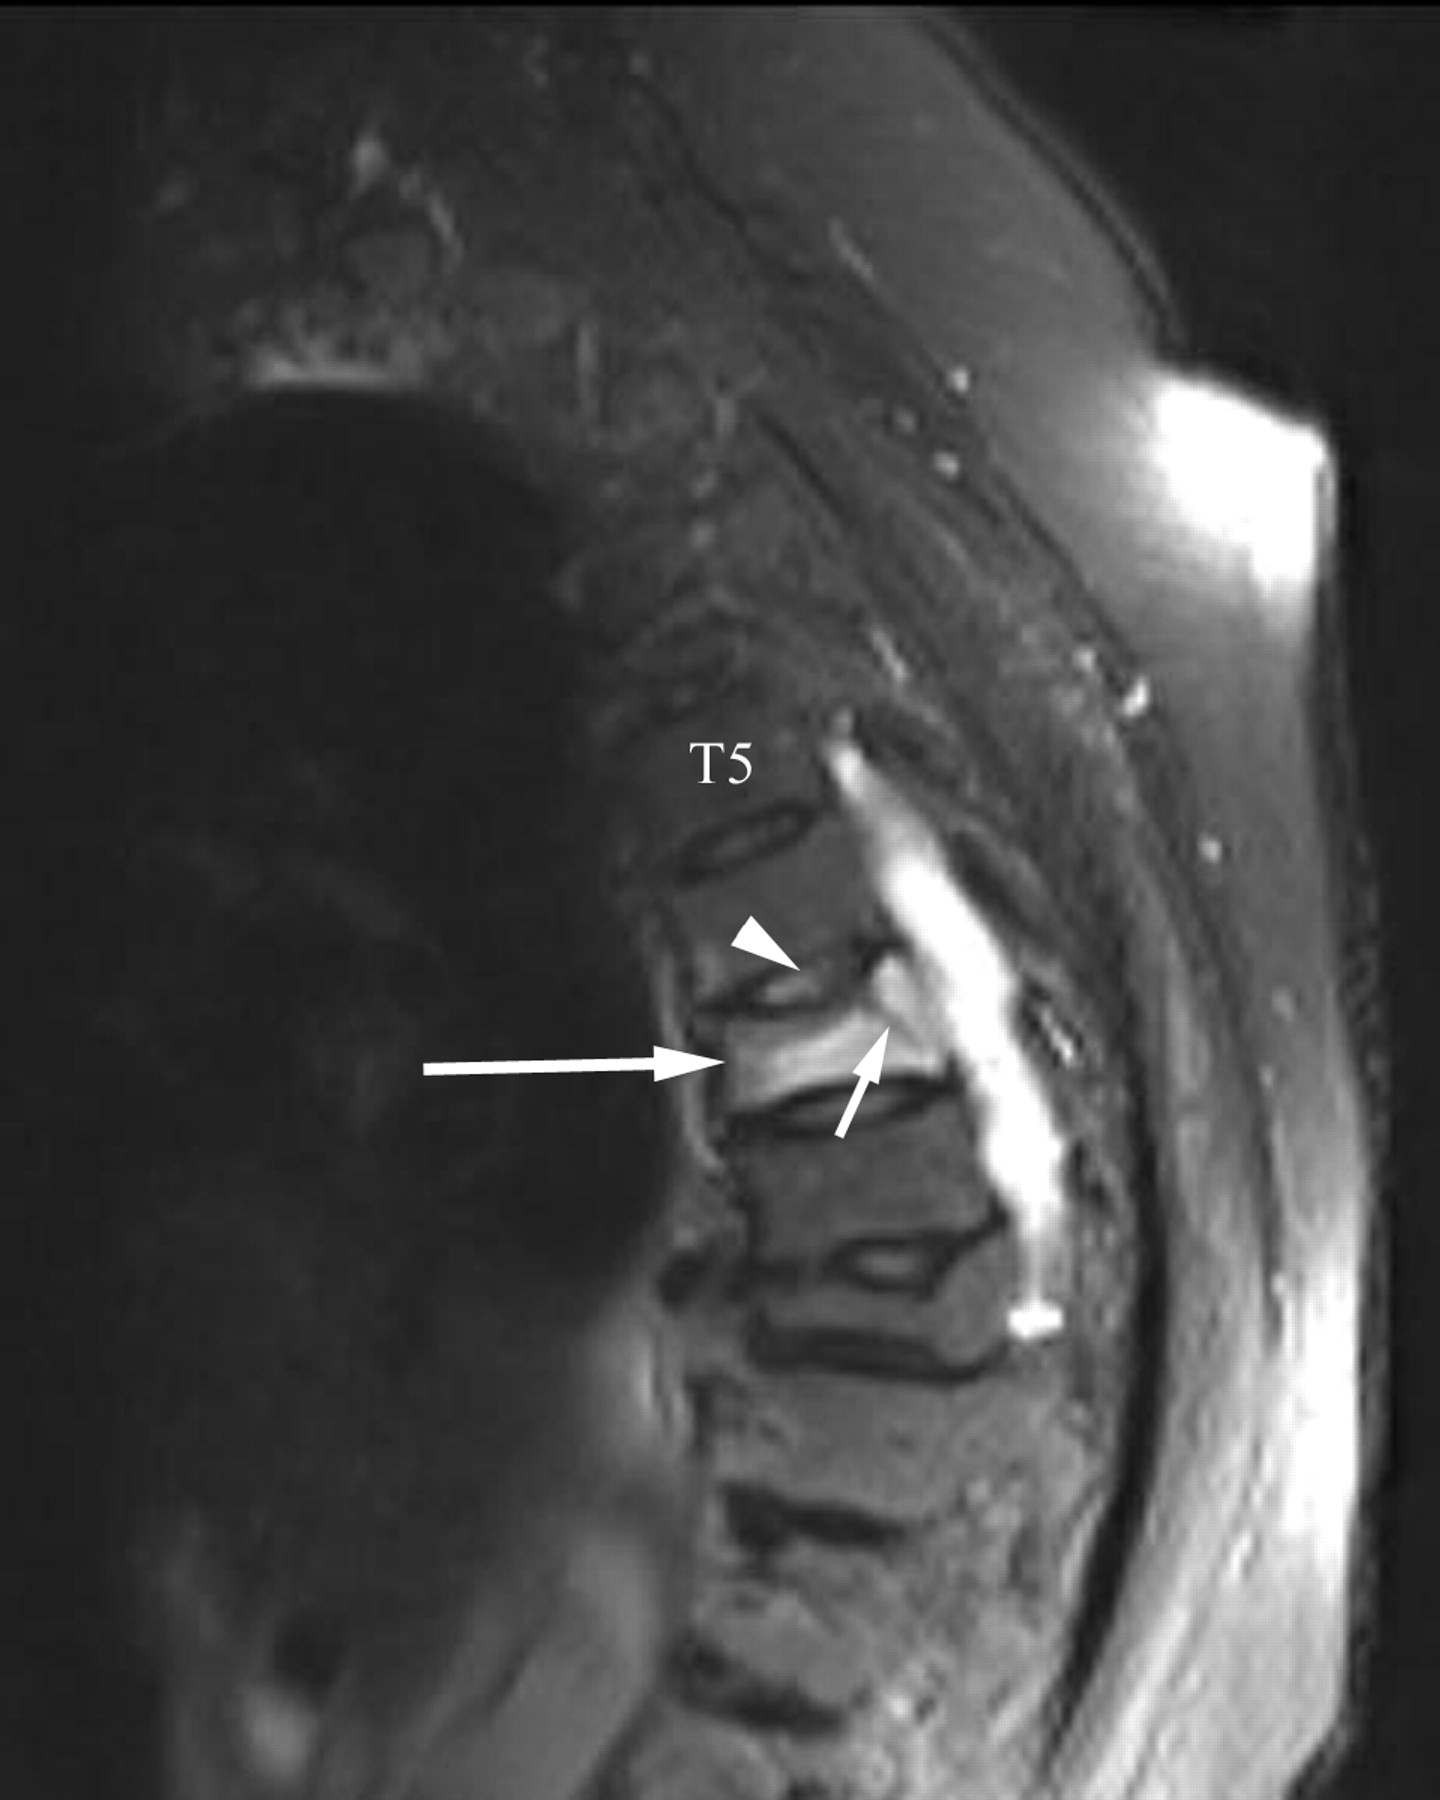 Injury to the Vertebral Endplate-Disk Complex Associated with